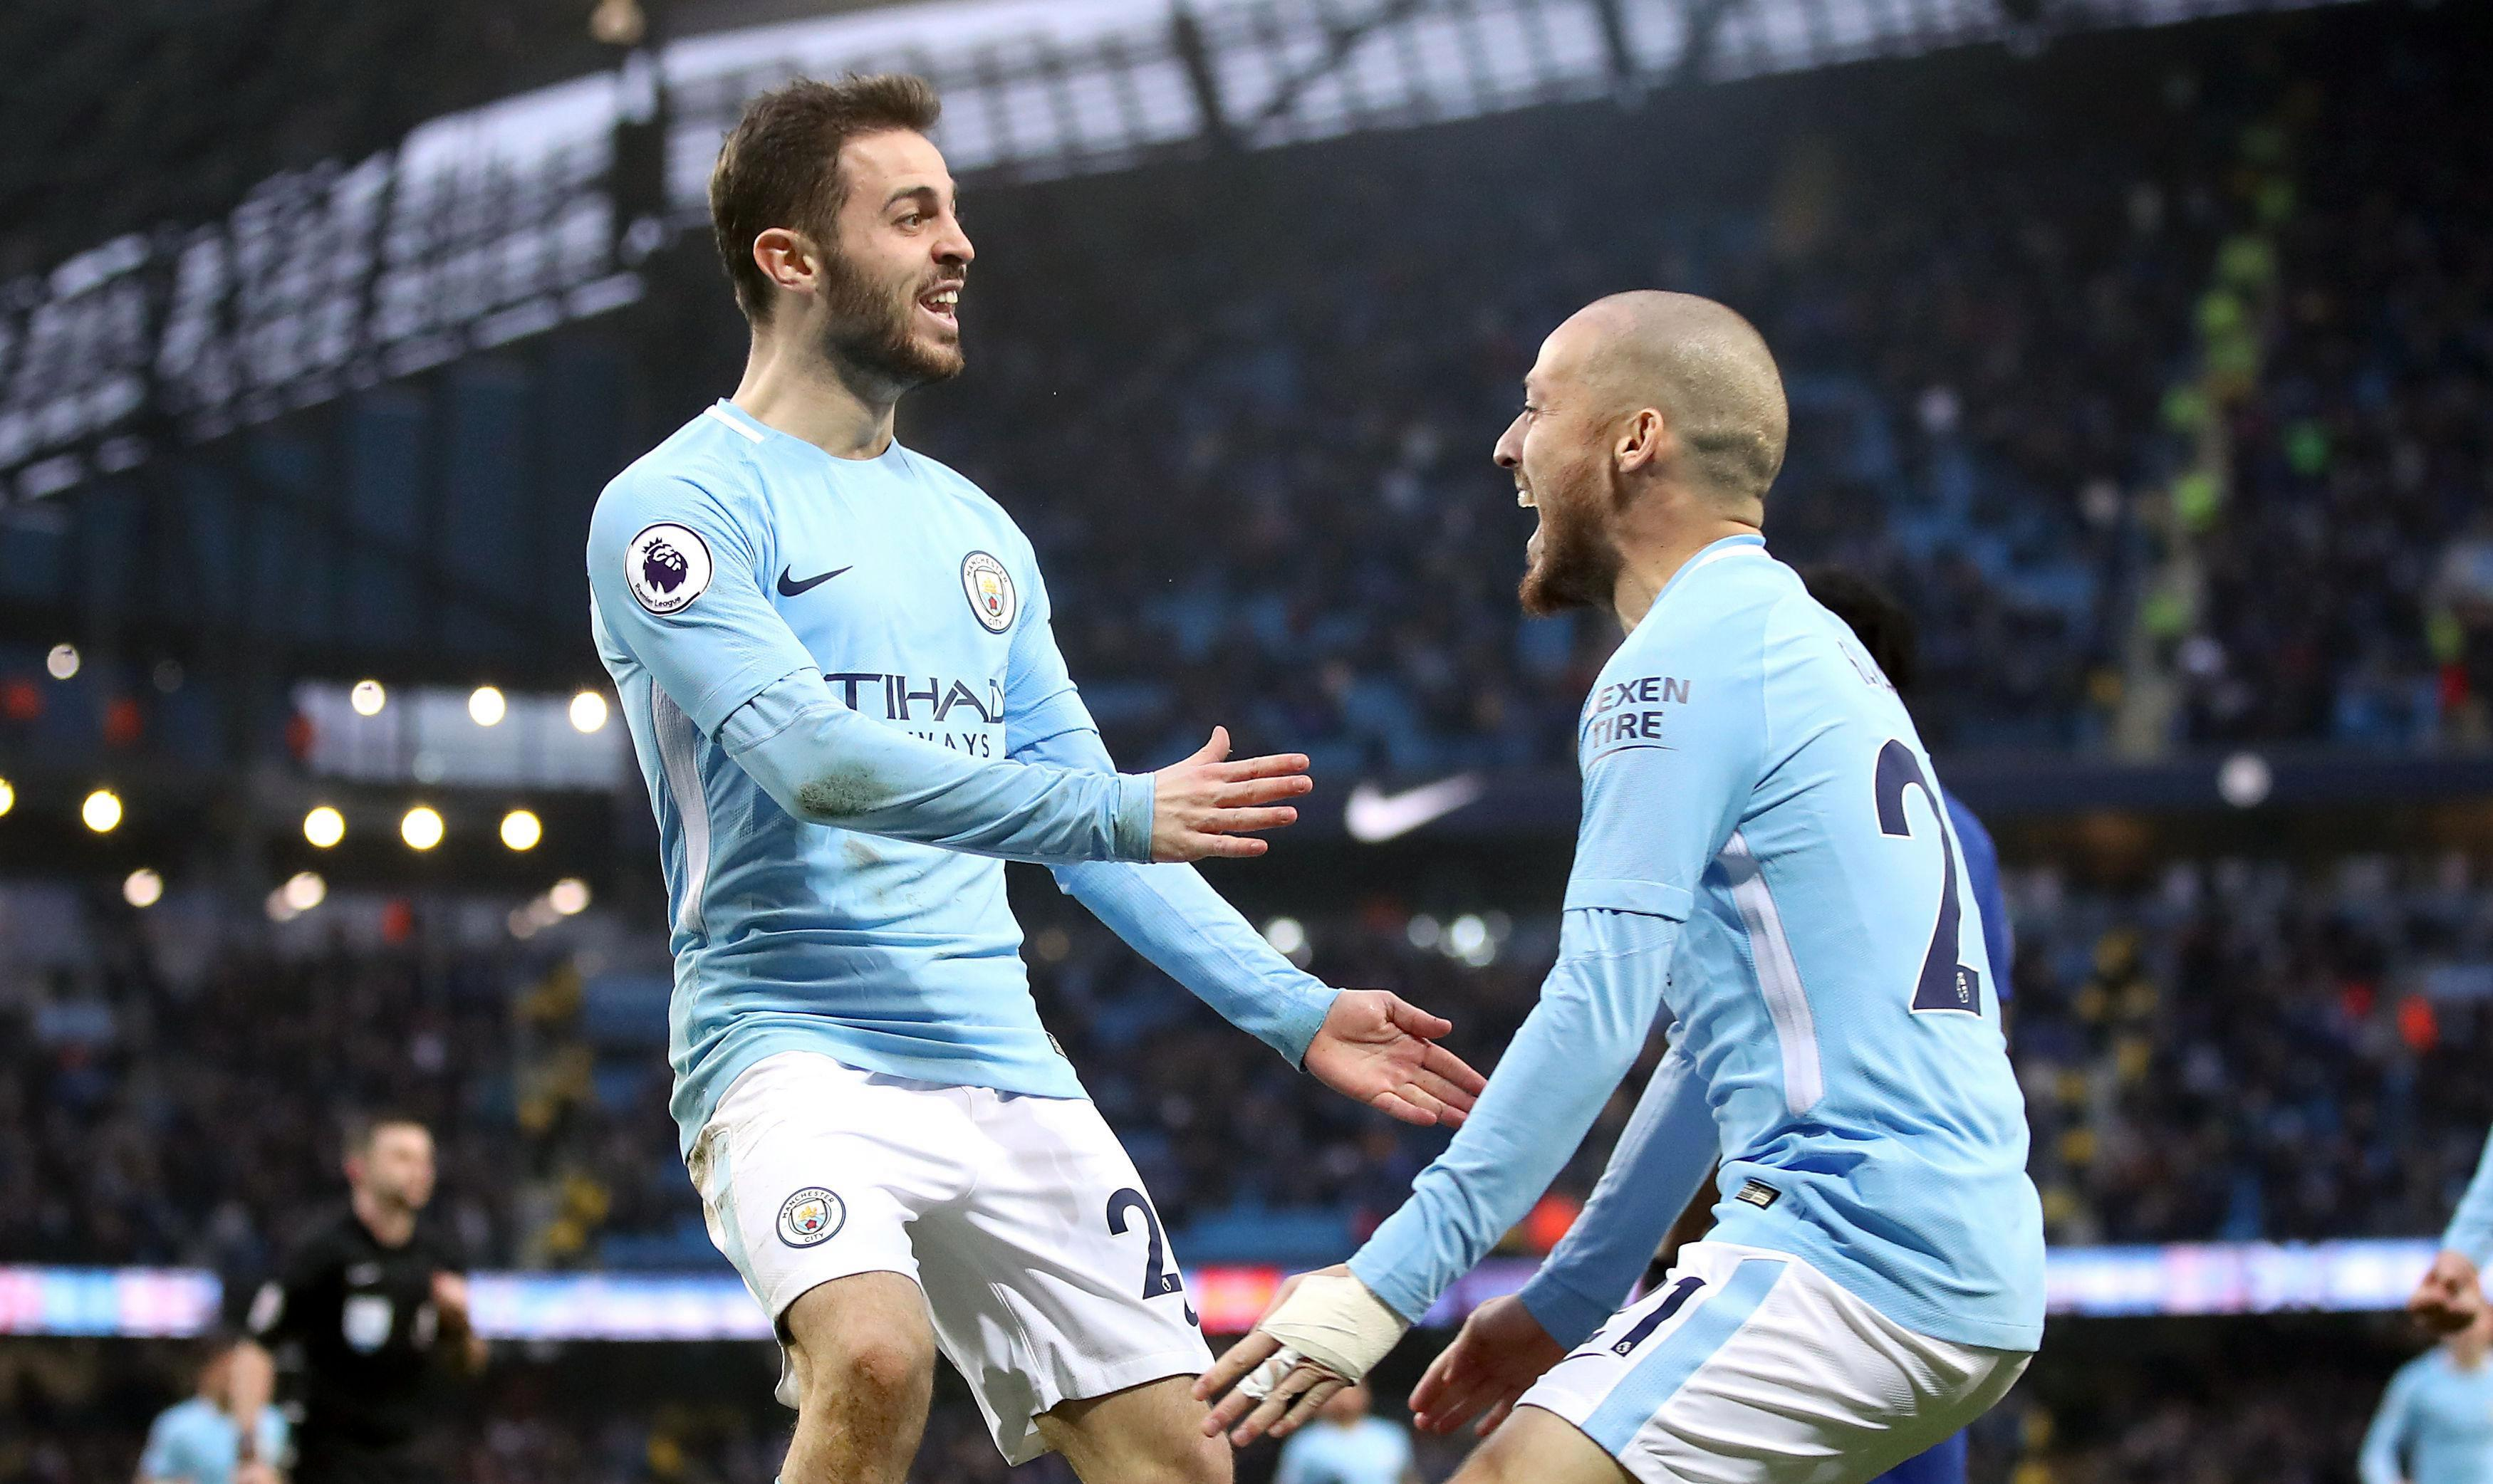 Pep Guardiola has turned Manchester City into the most-feared team in the world… now it's time to reap the rewards